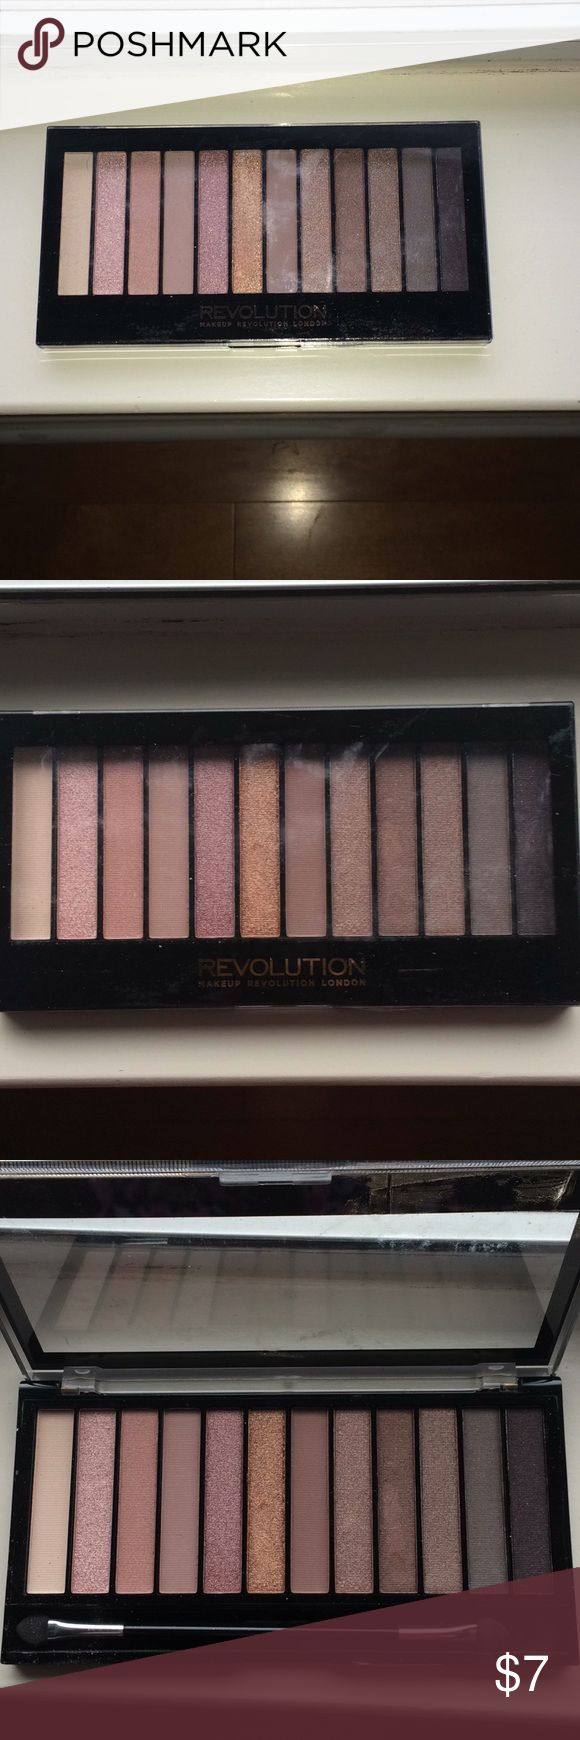 NEW makeup revolution London eyeshadow palette BRAND NEW never before used makeup revolution London Iconic 3 redemption eyeshadow palette Makeup Revolution London Makeup Eyeshadow